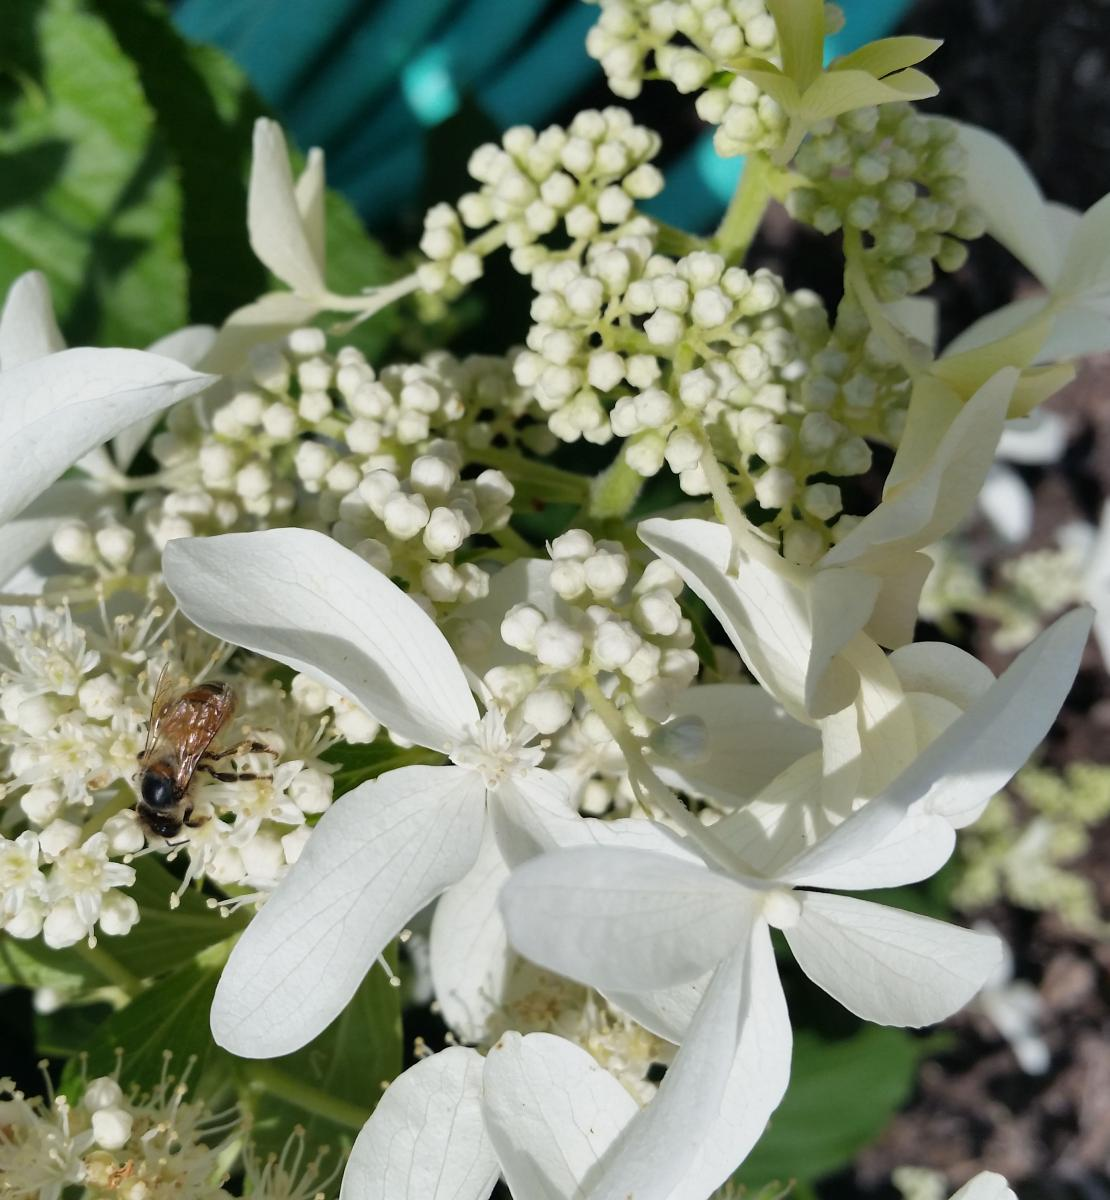 Honey bee on Hydrangea paniculata 'Great Star' with elongated petals